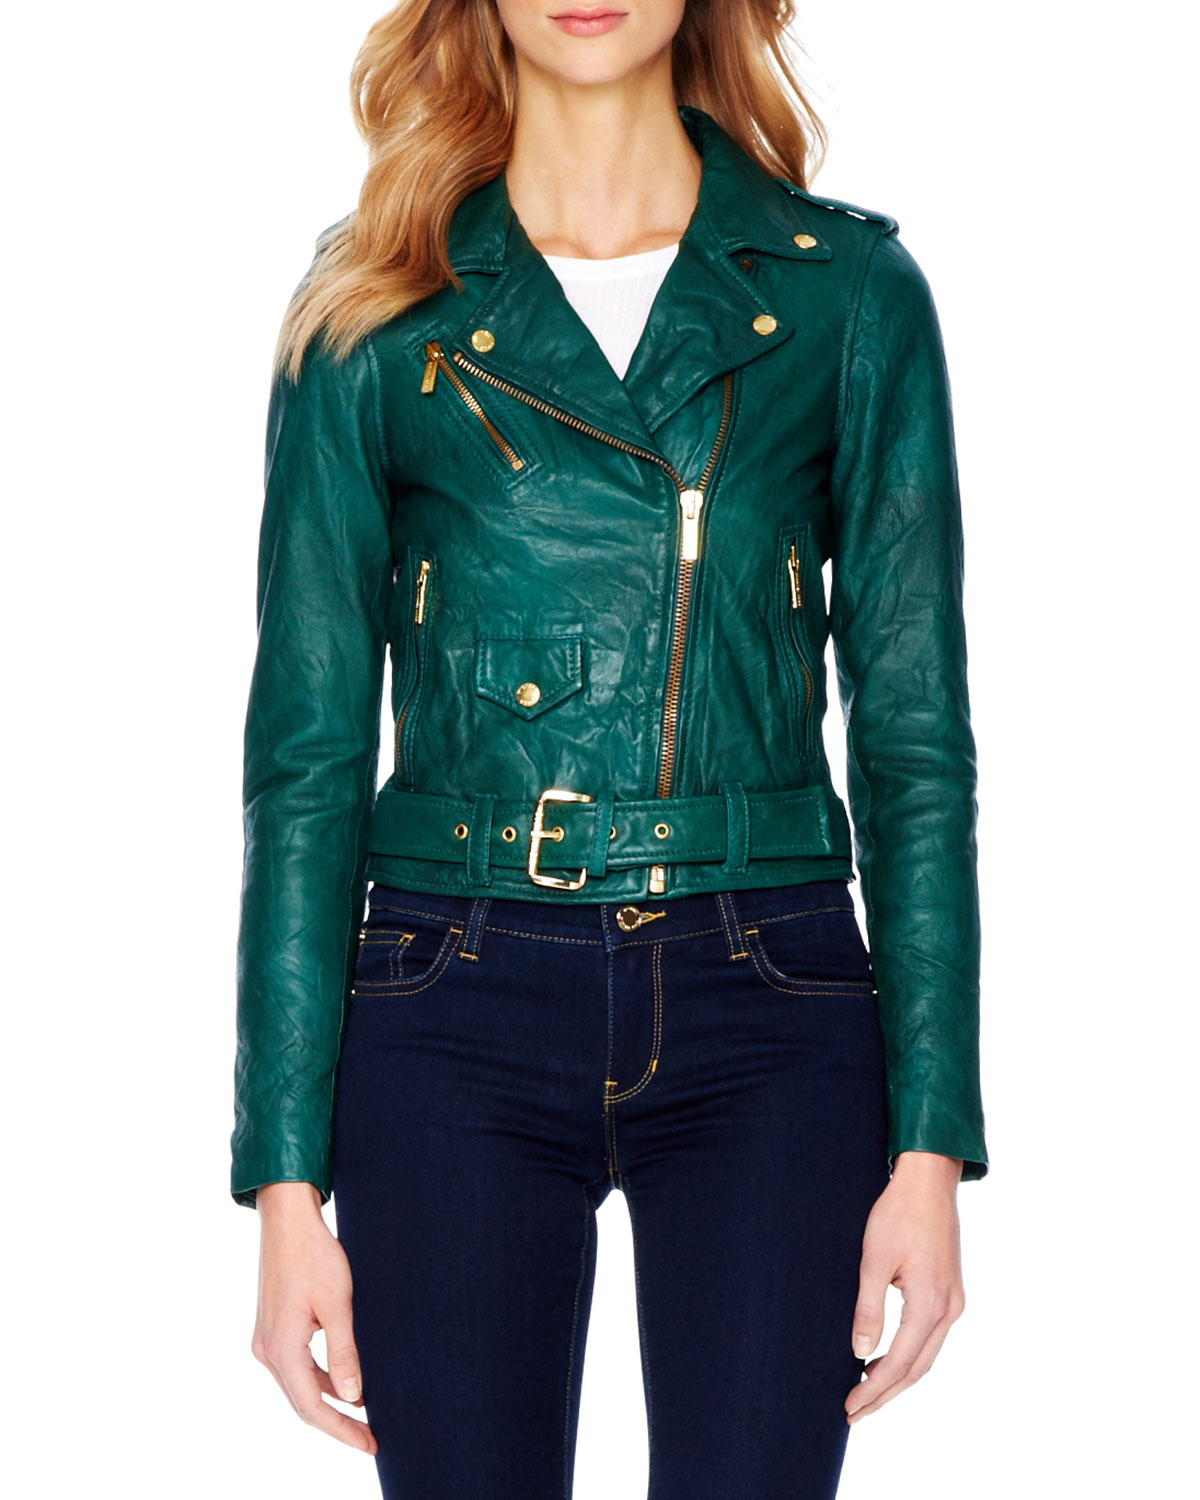 Michael michael kors Crinkled Leather Moto Jacket in Green | Lyst